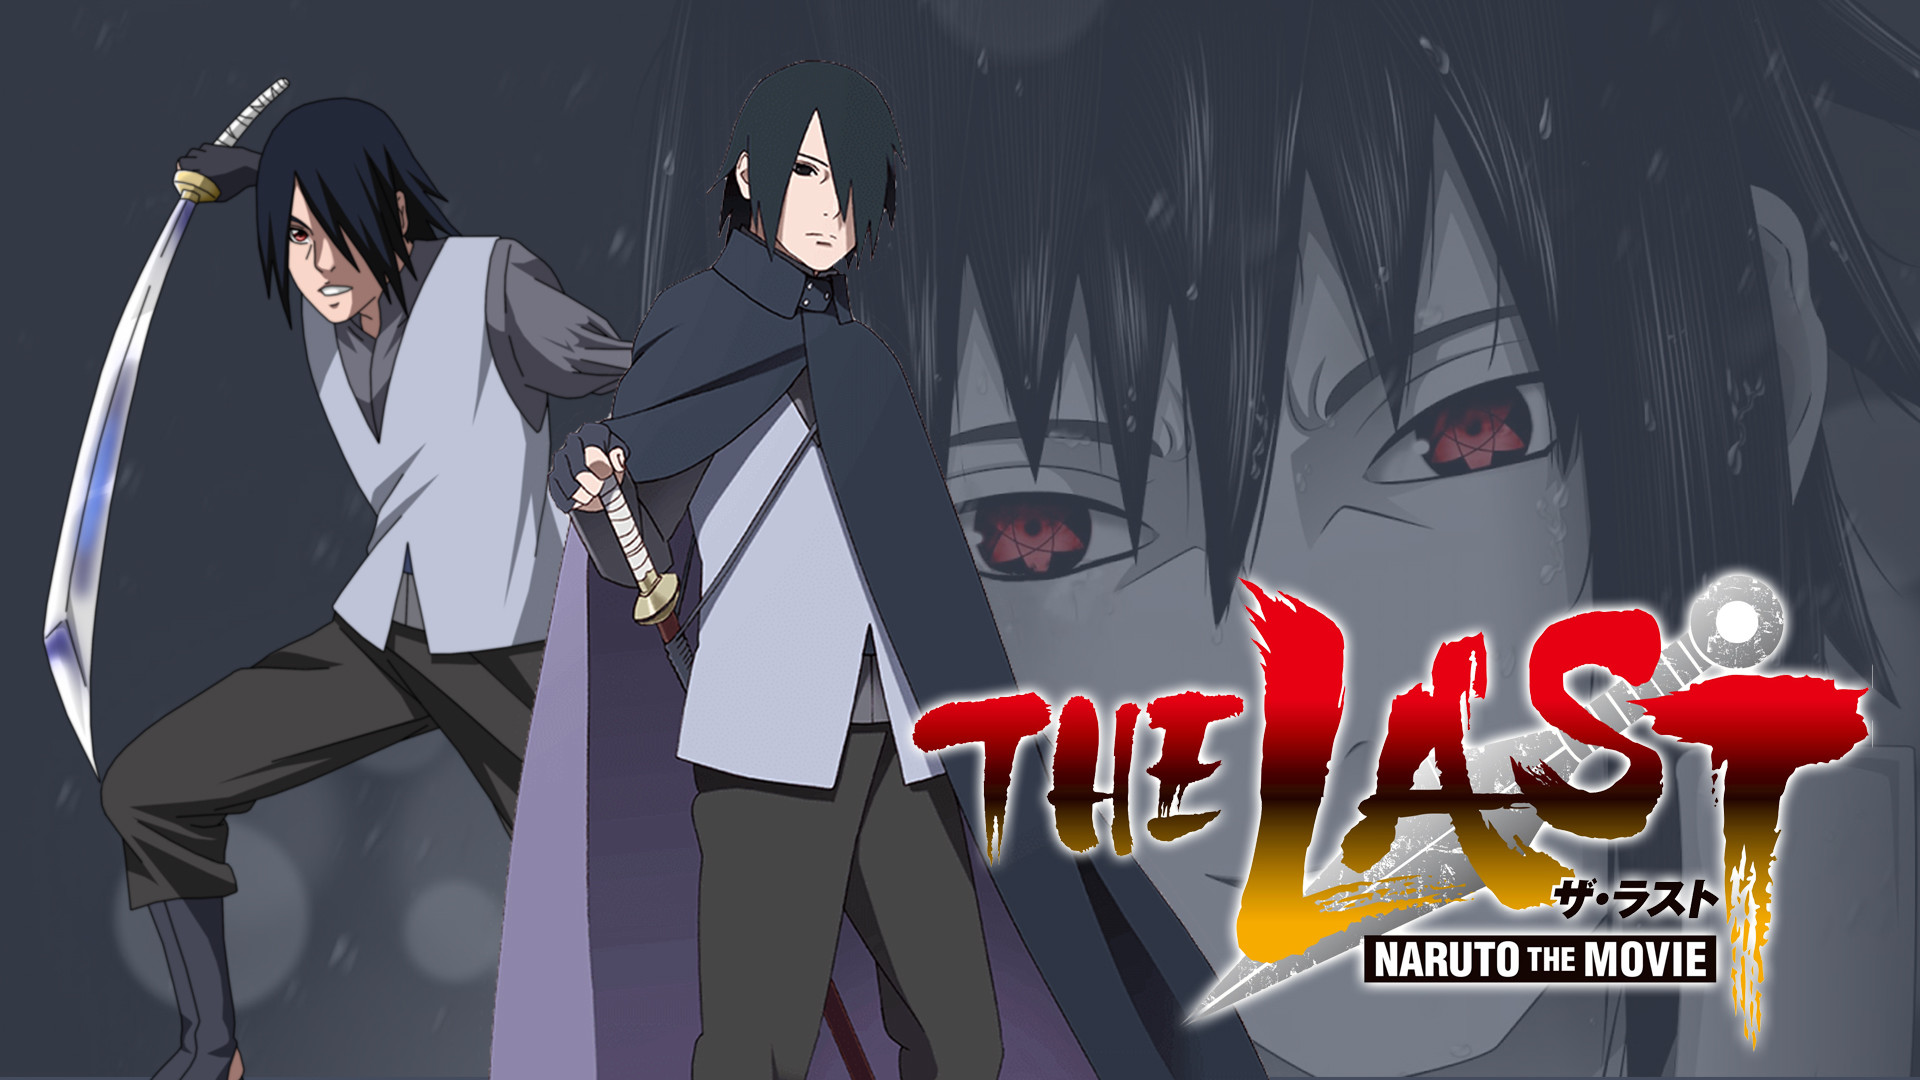 Sasuke The Last Wallpapers Wallpapertag